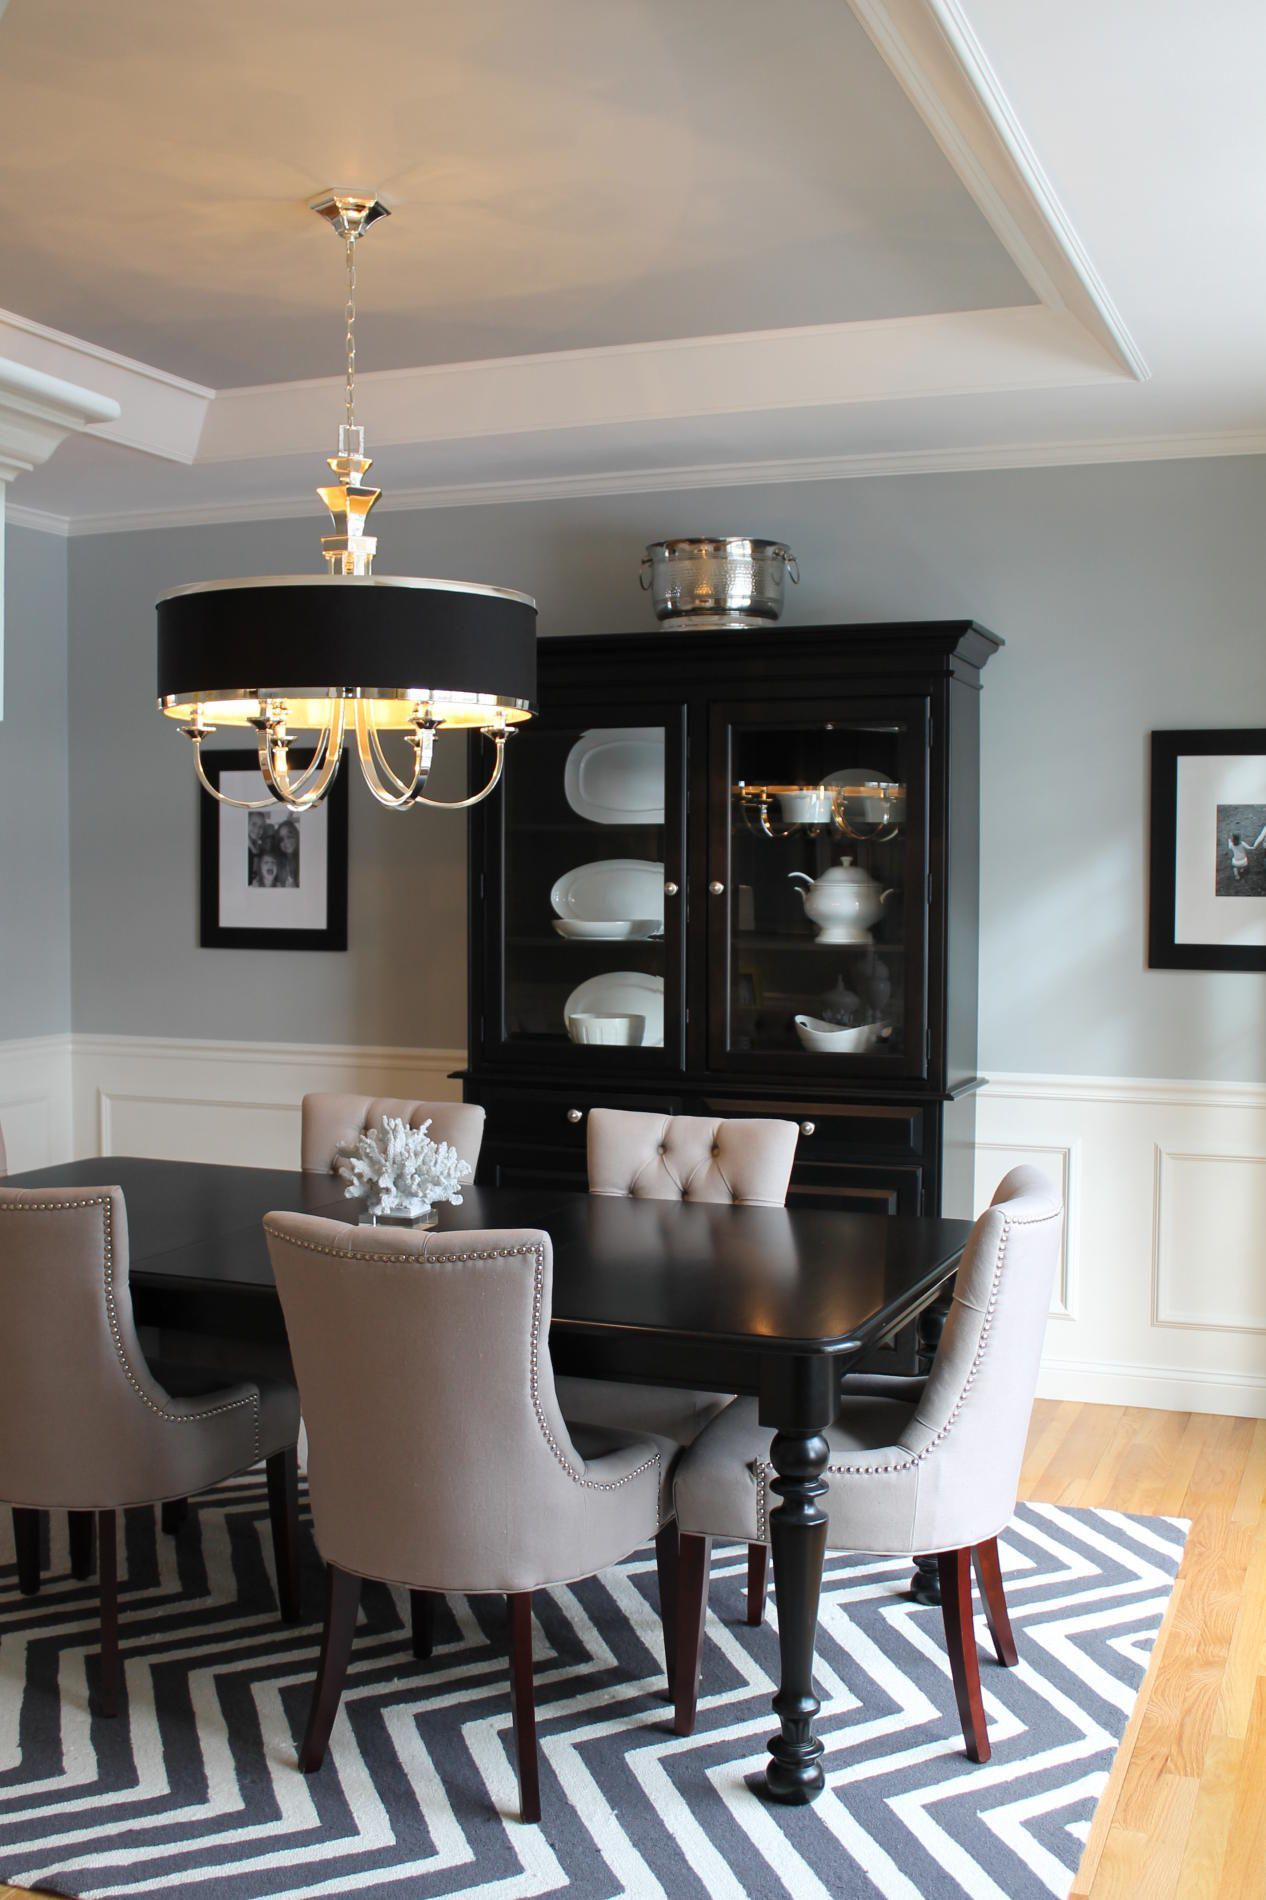 Pale Blue Dining Room Walls And Ceiling With White Wainscoting Black Accents Dining Room Blue Blue Dining Room Walls Dining Room Paint Colors